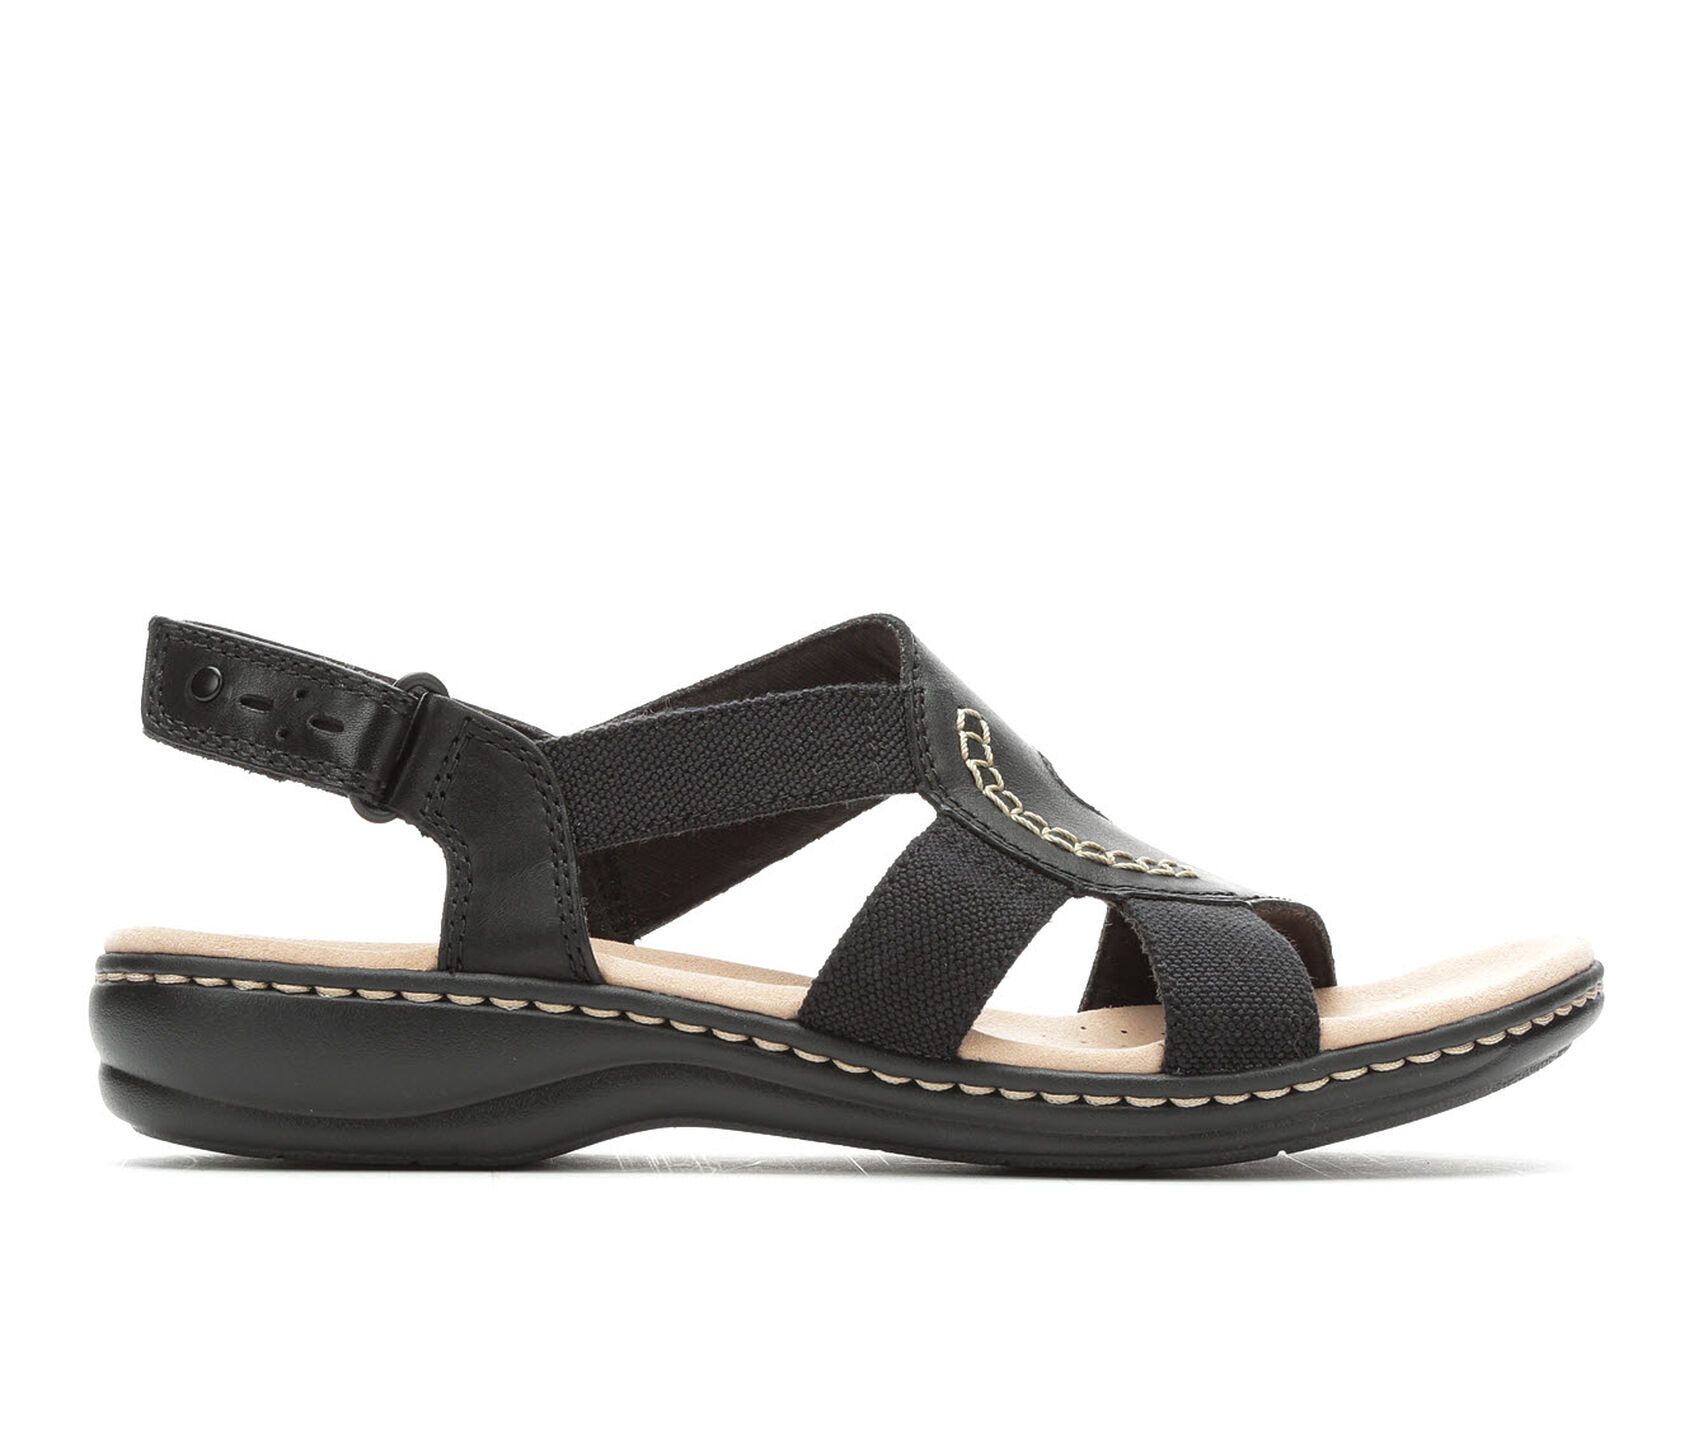 af61273119d ... Clarks Leisa Joy Sandals. Previous